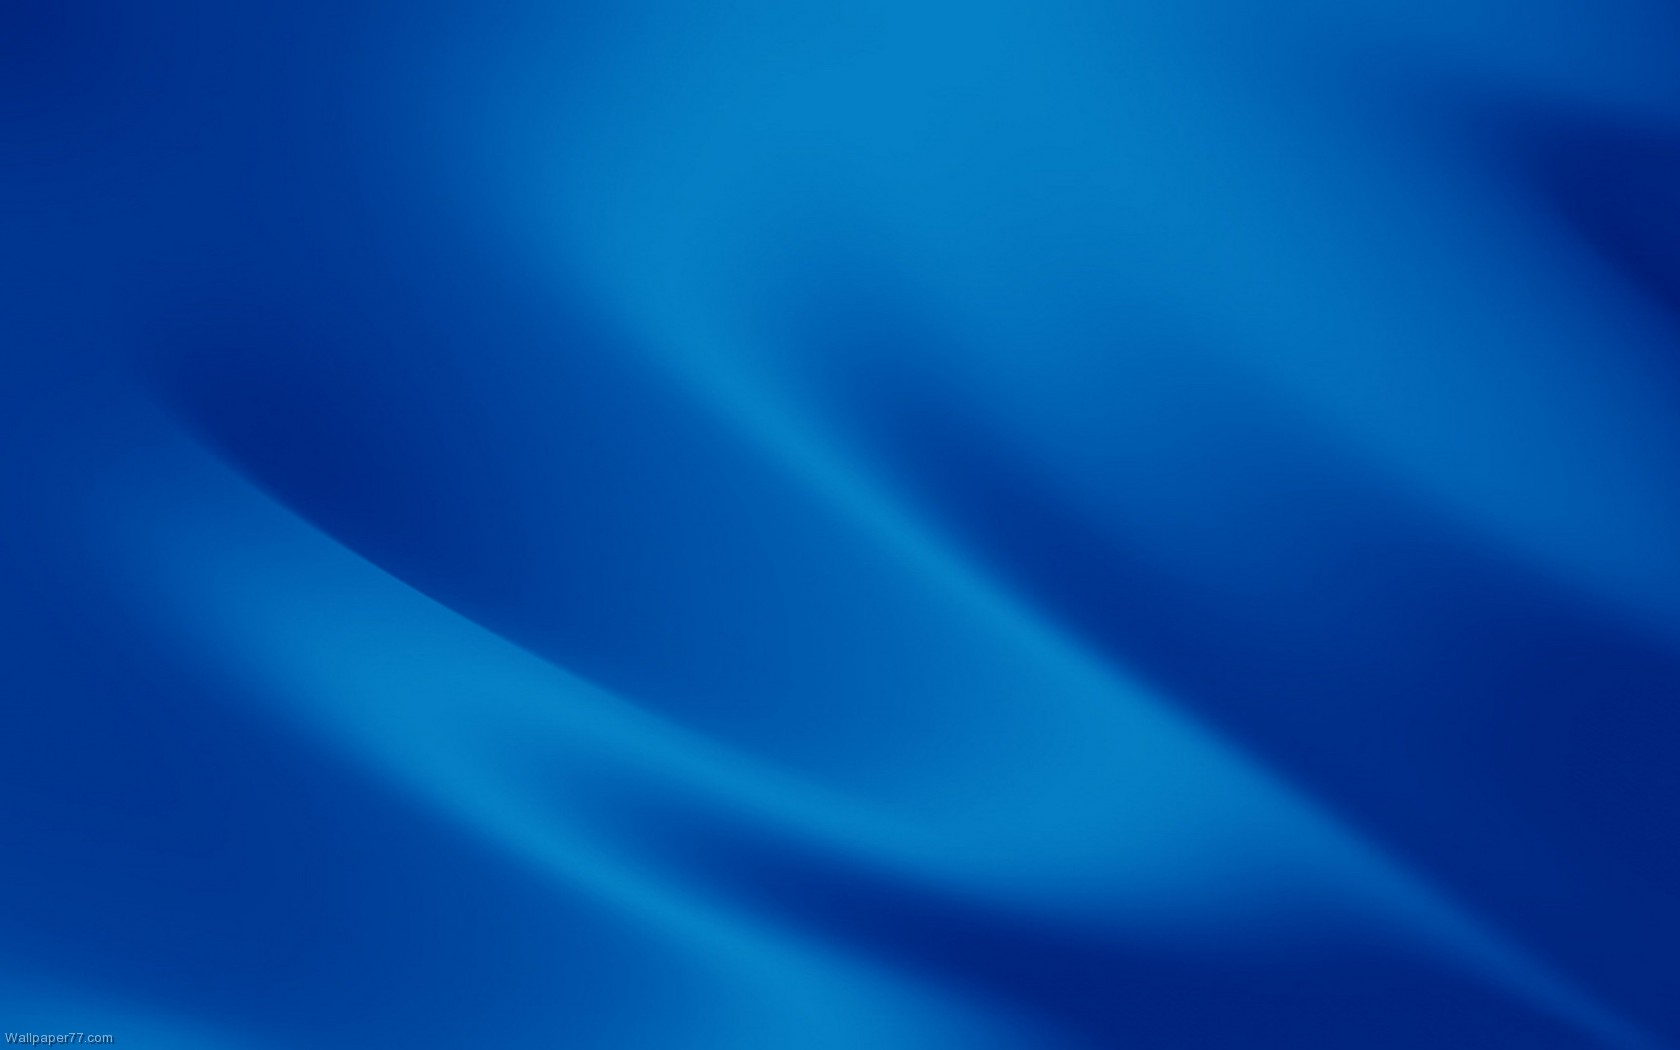 Dark Blue Background Wallpaper Image Abstract Blue ...